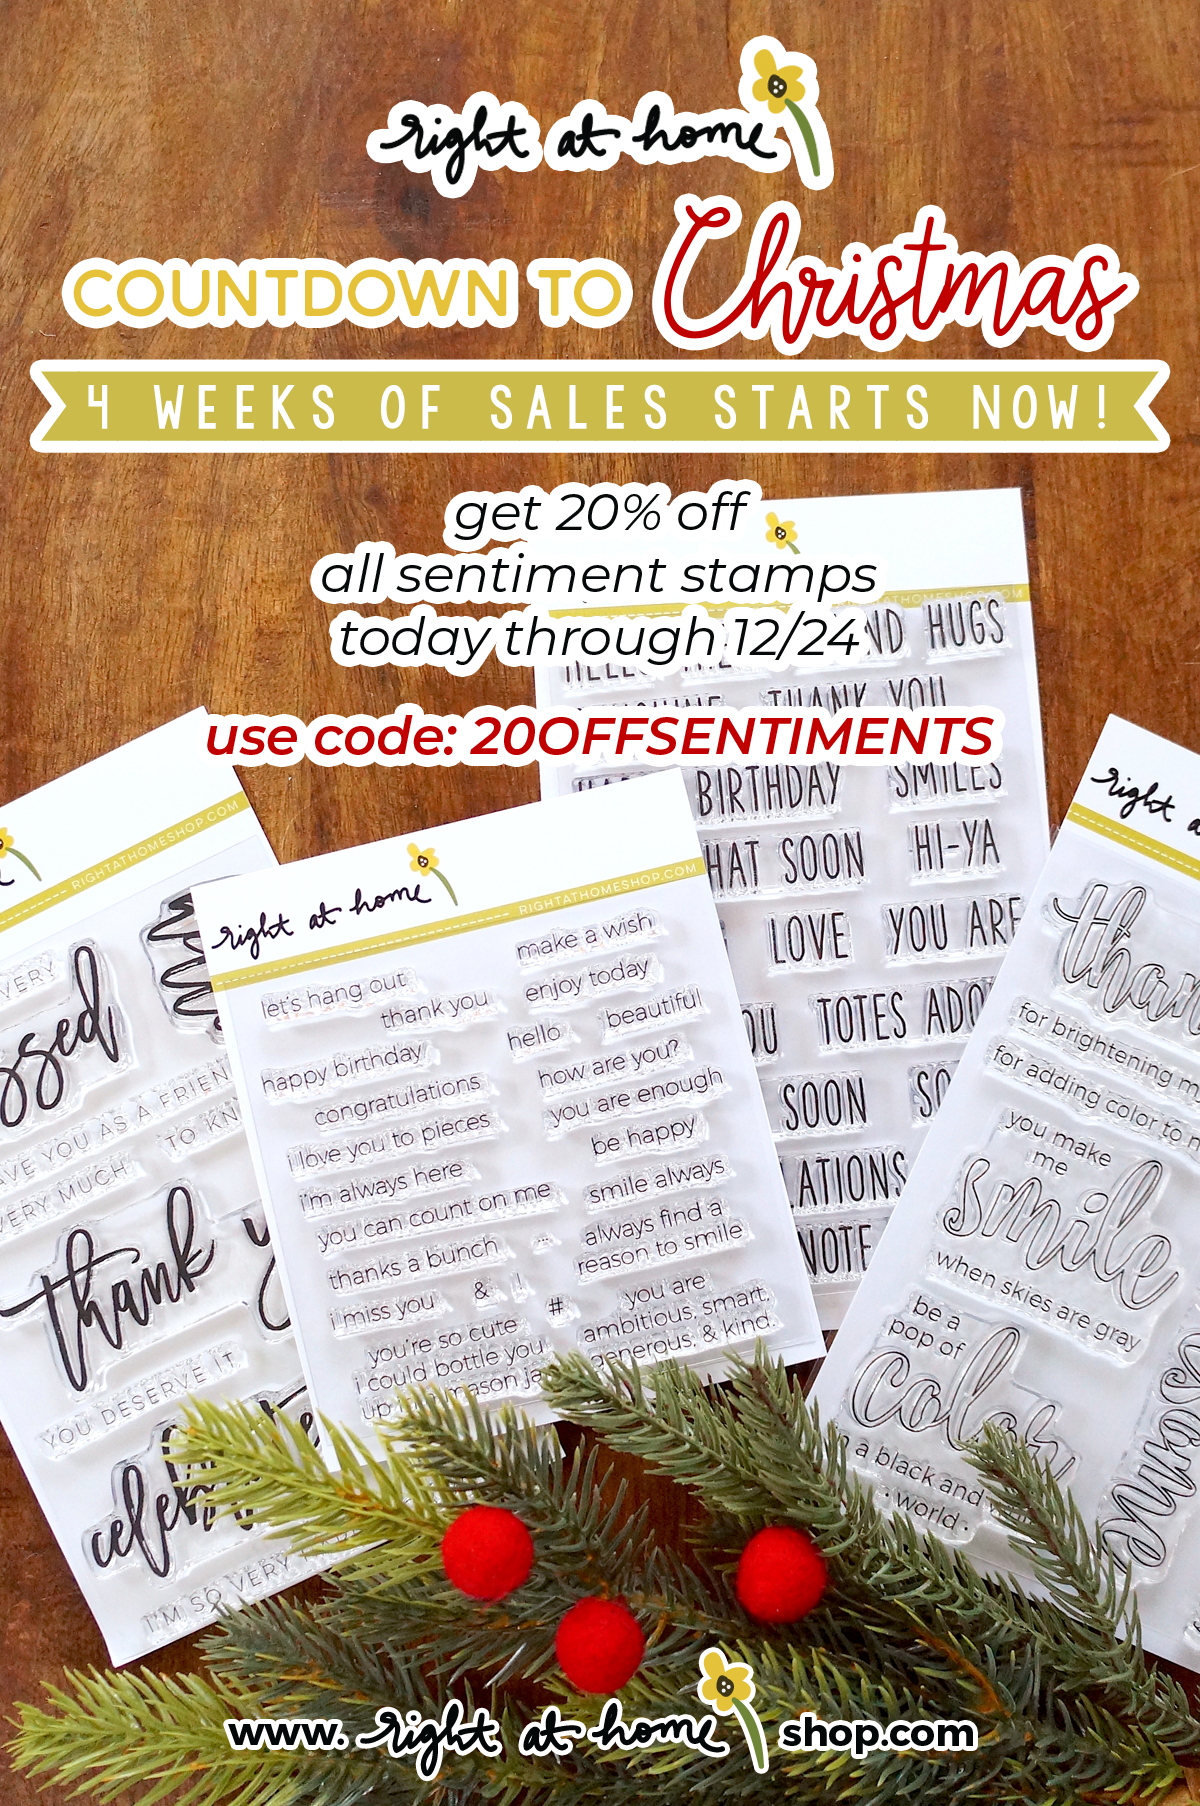 The Right at Home Countdown to Christmas 4 Week Sale Event Starts Now! Visit www.rightathomeshop.com to get 20% off all sentiment stamps until 12/17/18 with code 20OFFSENTIMENTS